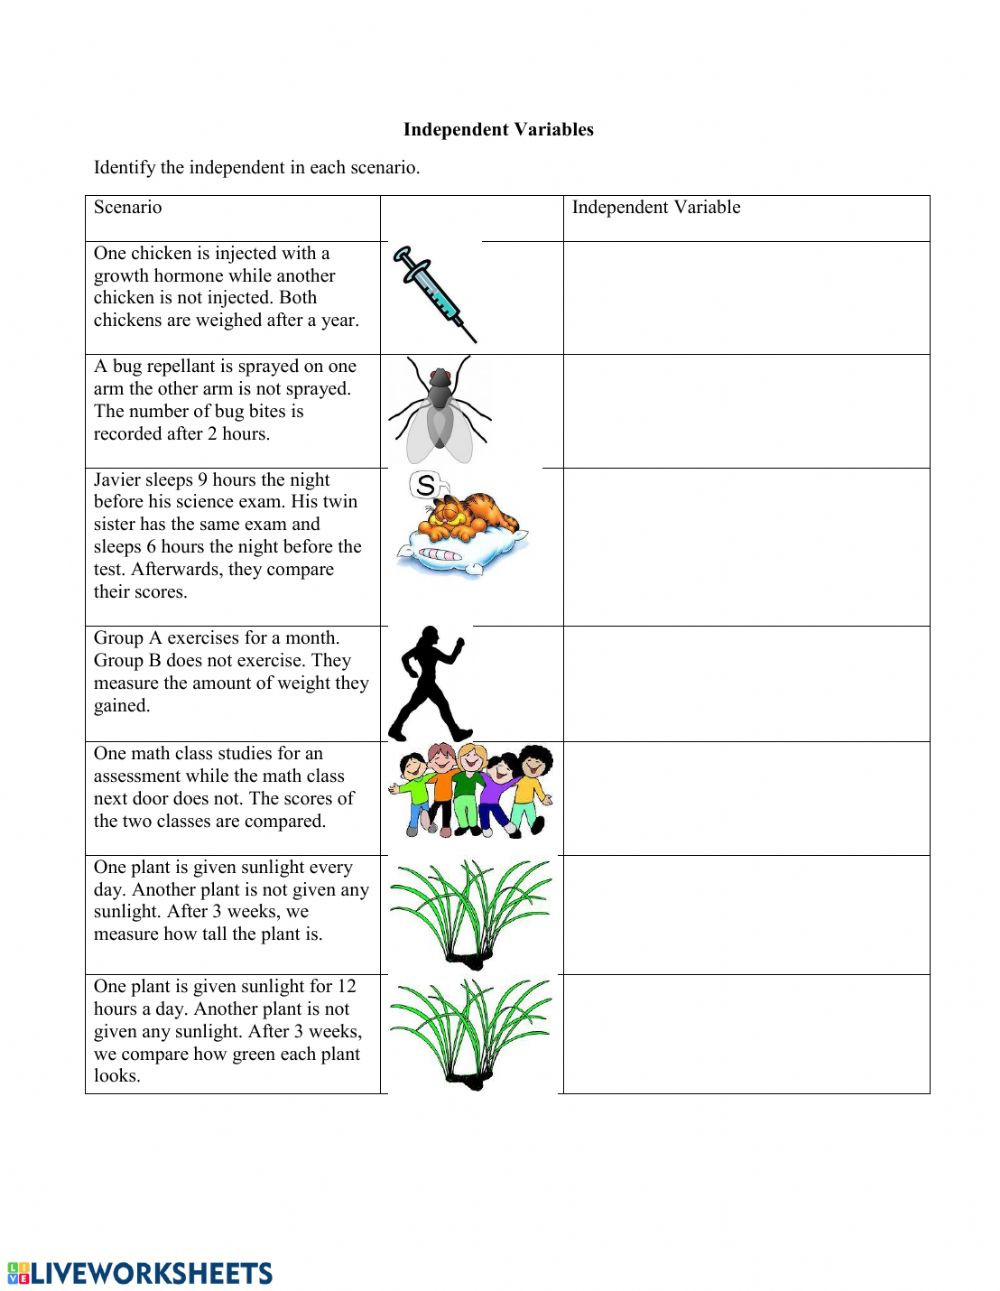 Identifying Variables Worksheet Answers Identifying Independent Variables Interactive Worksheet